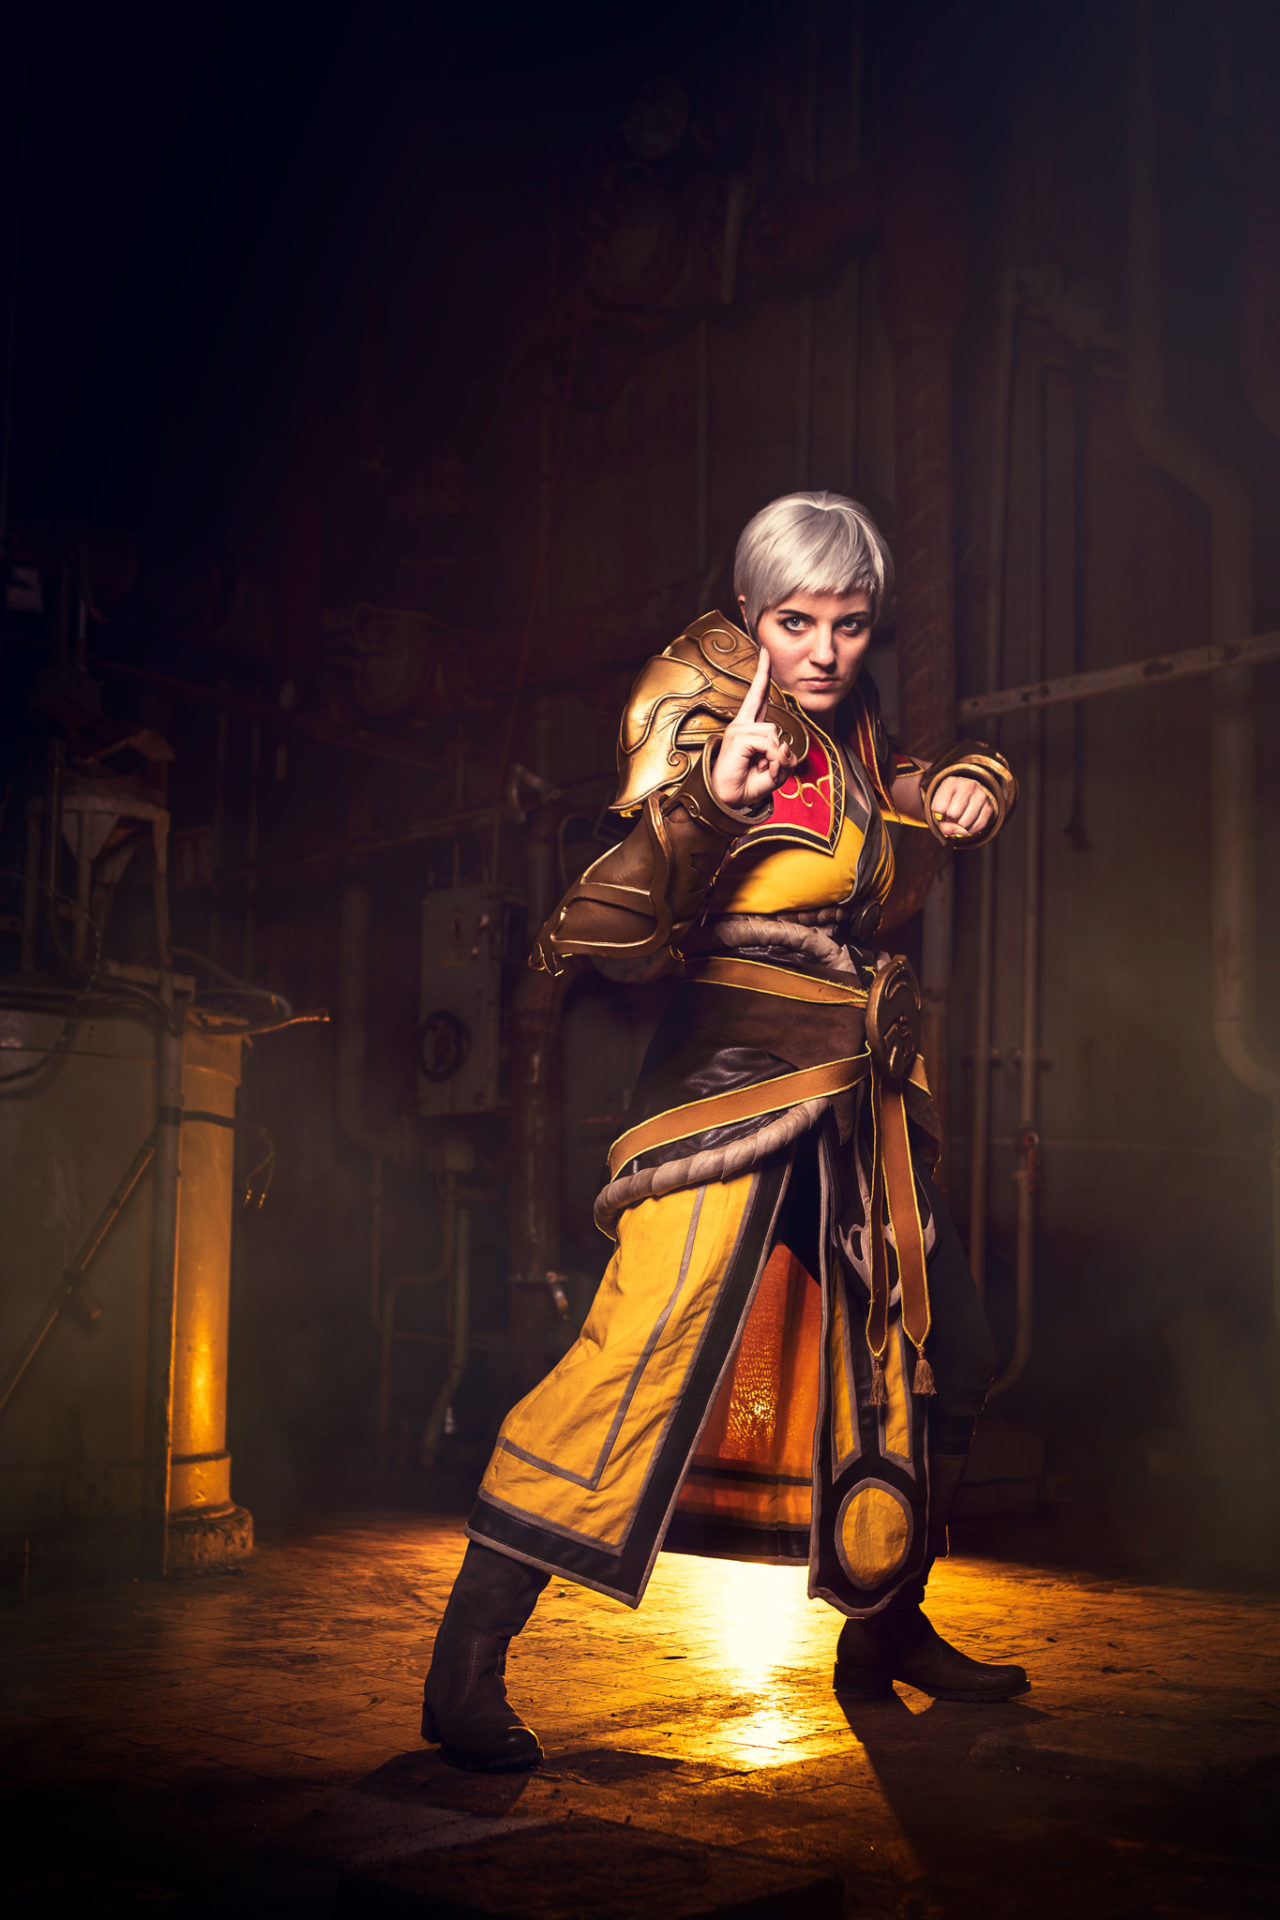 cosplay female monk diablo pmd photograph